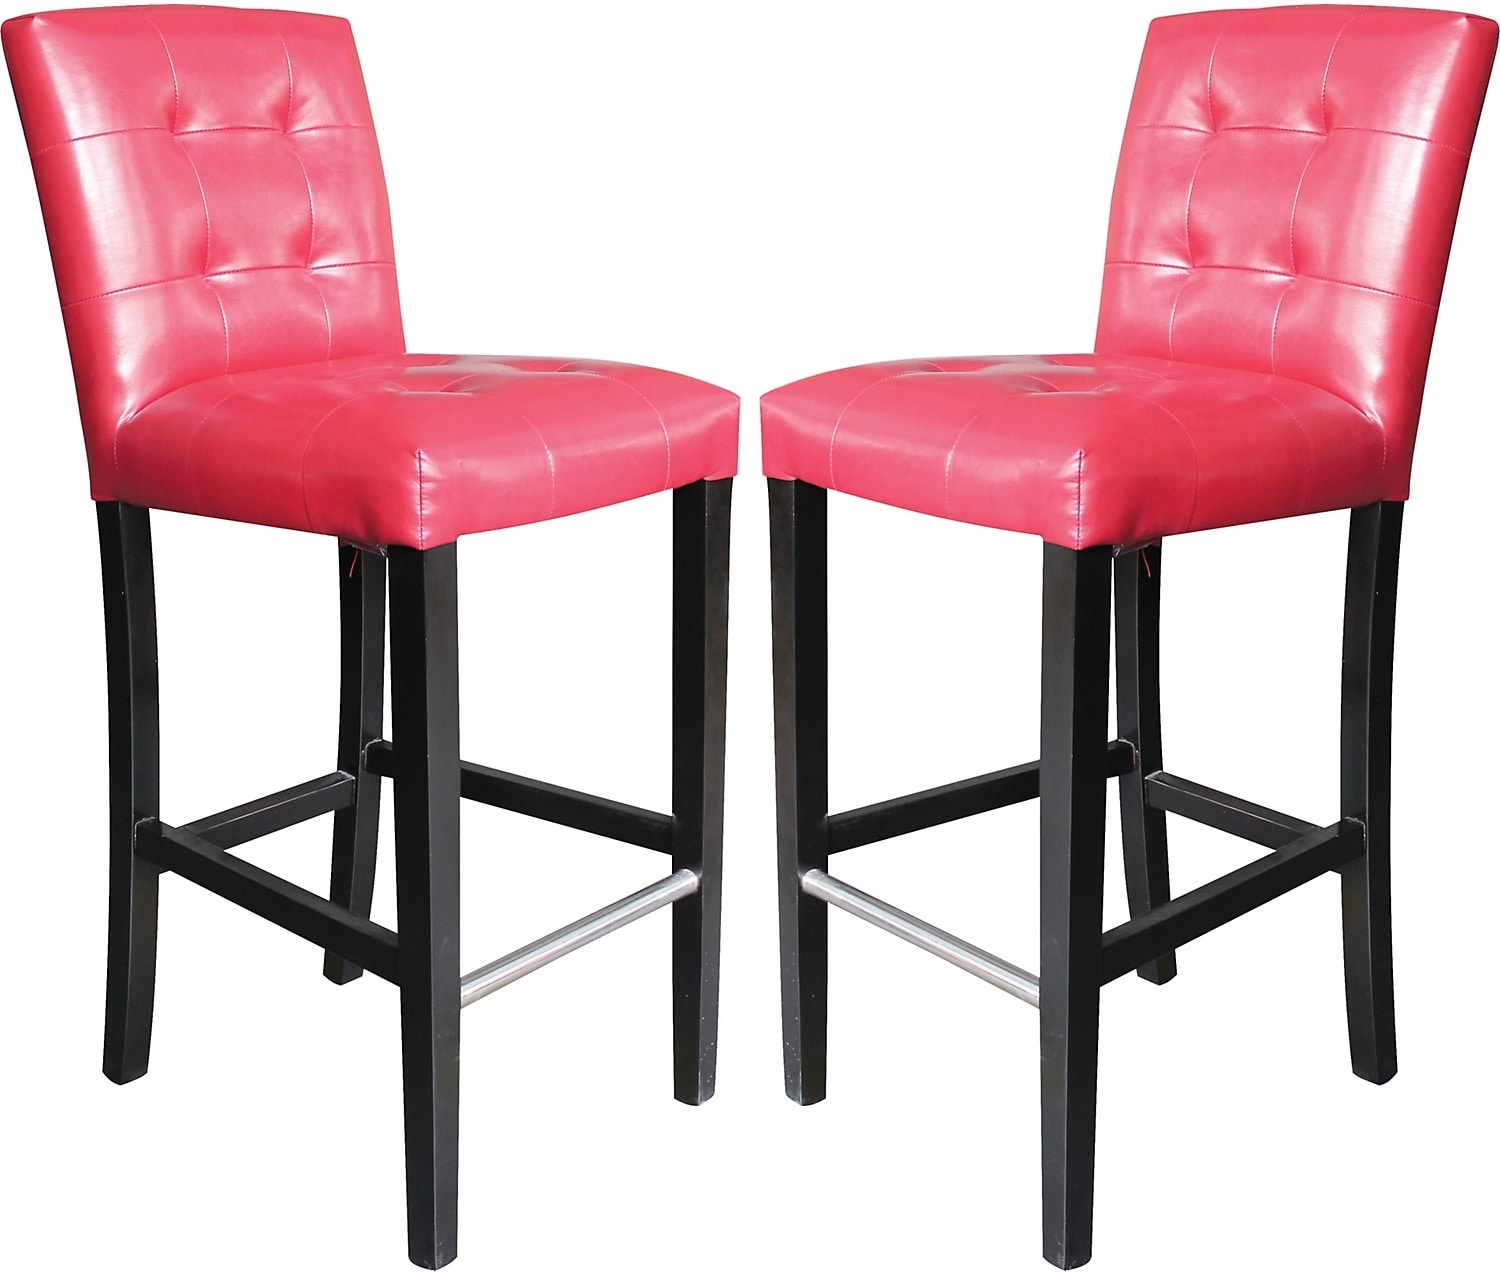 Cosmo Bar Stool Set of 2 - Red